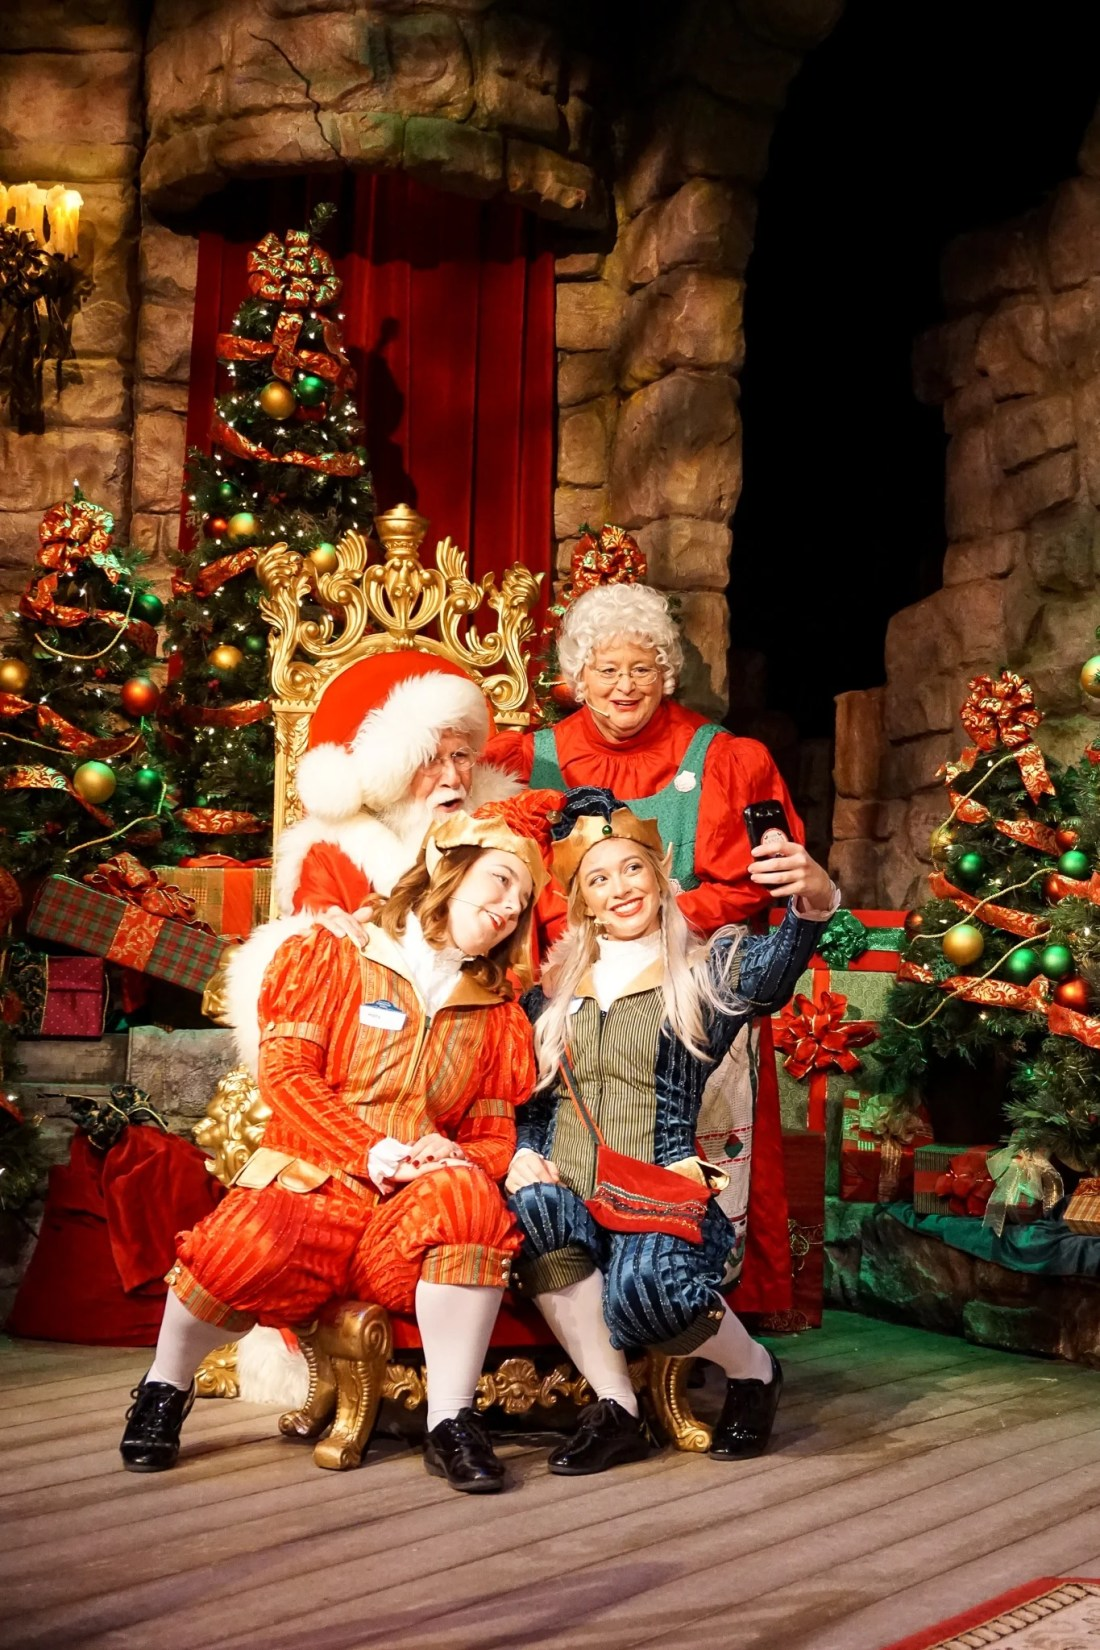 Santas Fireside Feast Elves Santa Selfie. Gather around as Santa recounts a classic Christmas story while elves prepare a scrumptious all-you-care-to-eat meal and Mrs. Claus dazzles the dining room with holiday cheer. Read more about this wonderful feast at Busch Gardens Christmas Town in Williamsburg, Virginia.